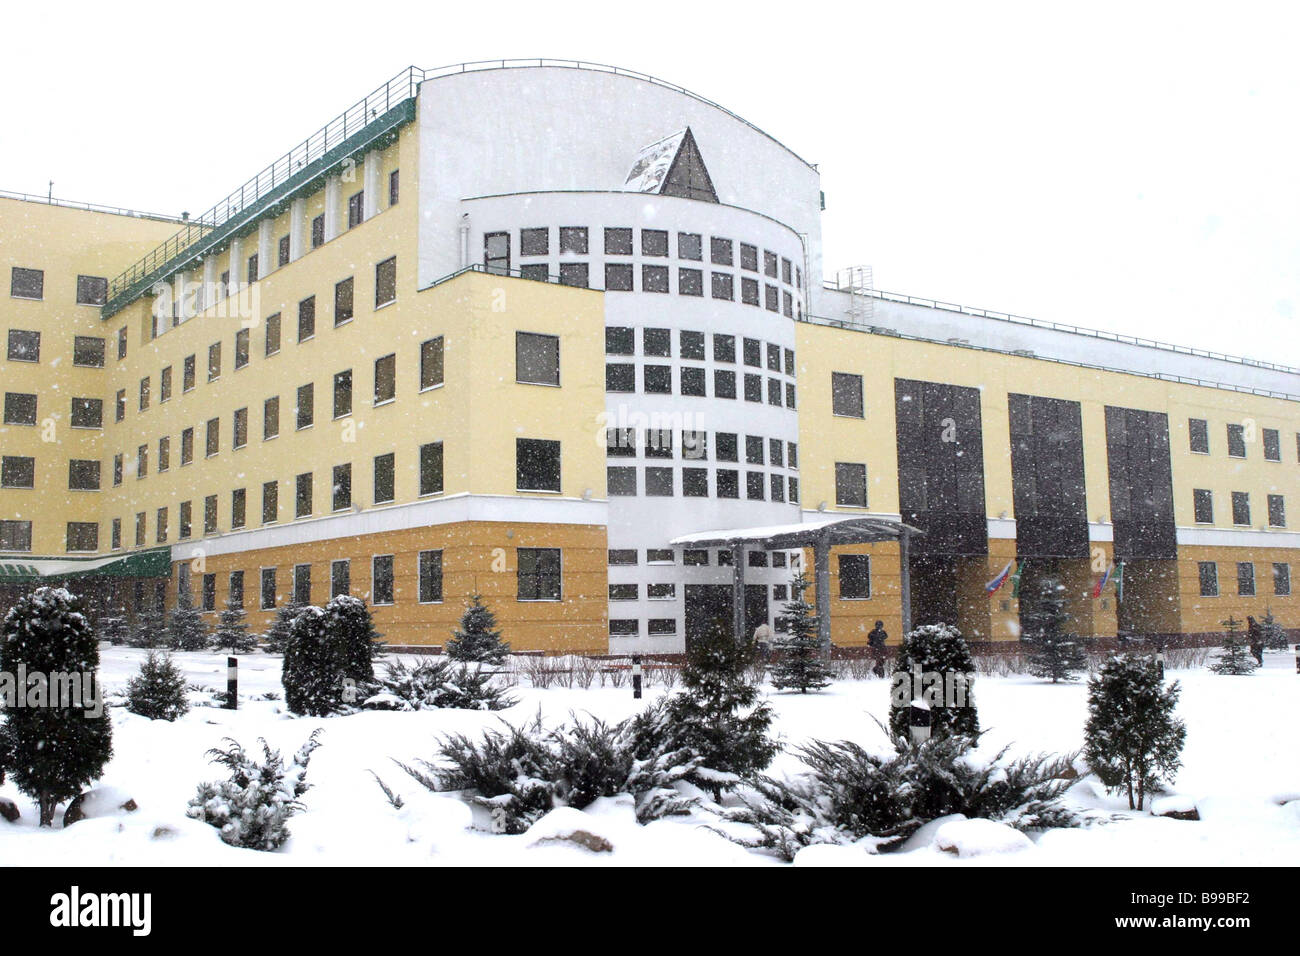 The premises of the Federal Customs Service - Stock Image